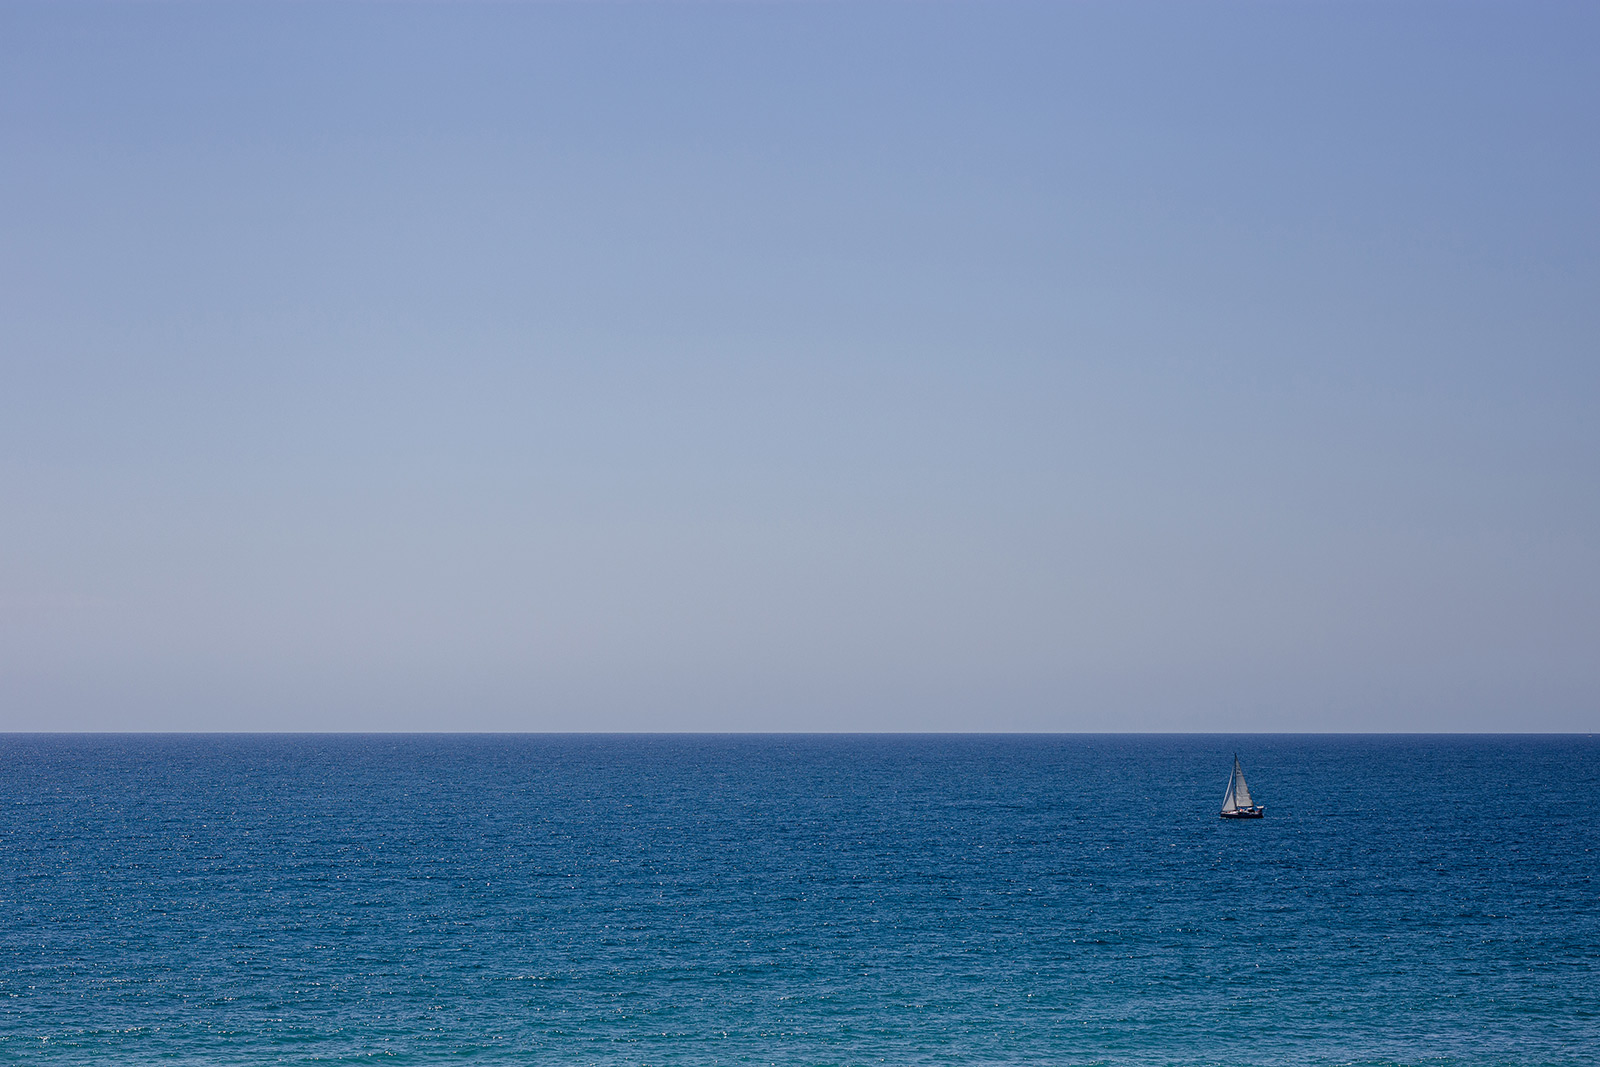 The sea in Sitges